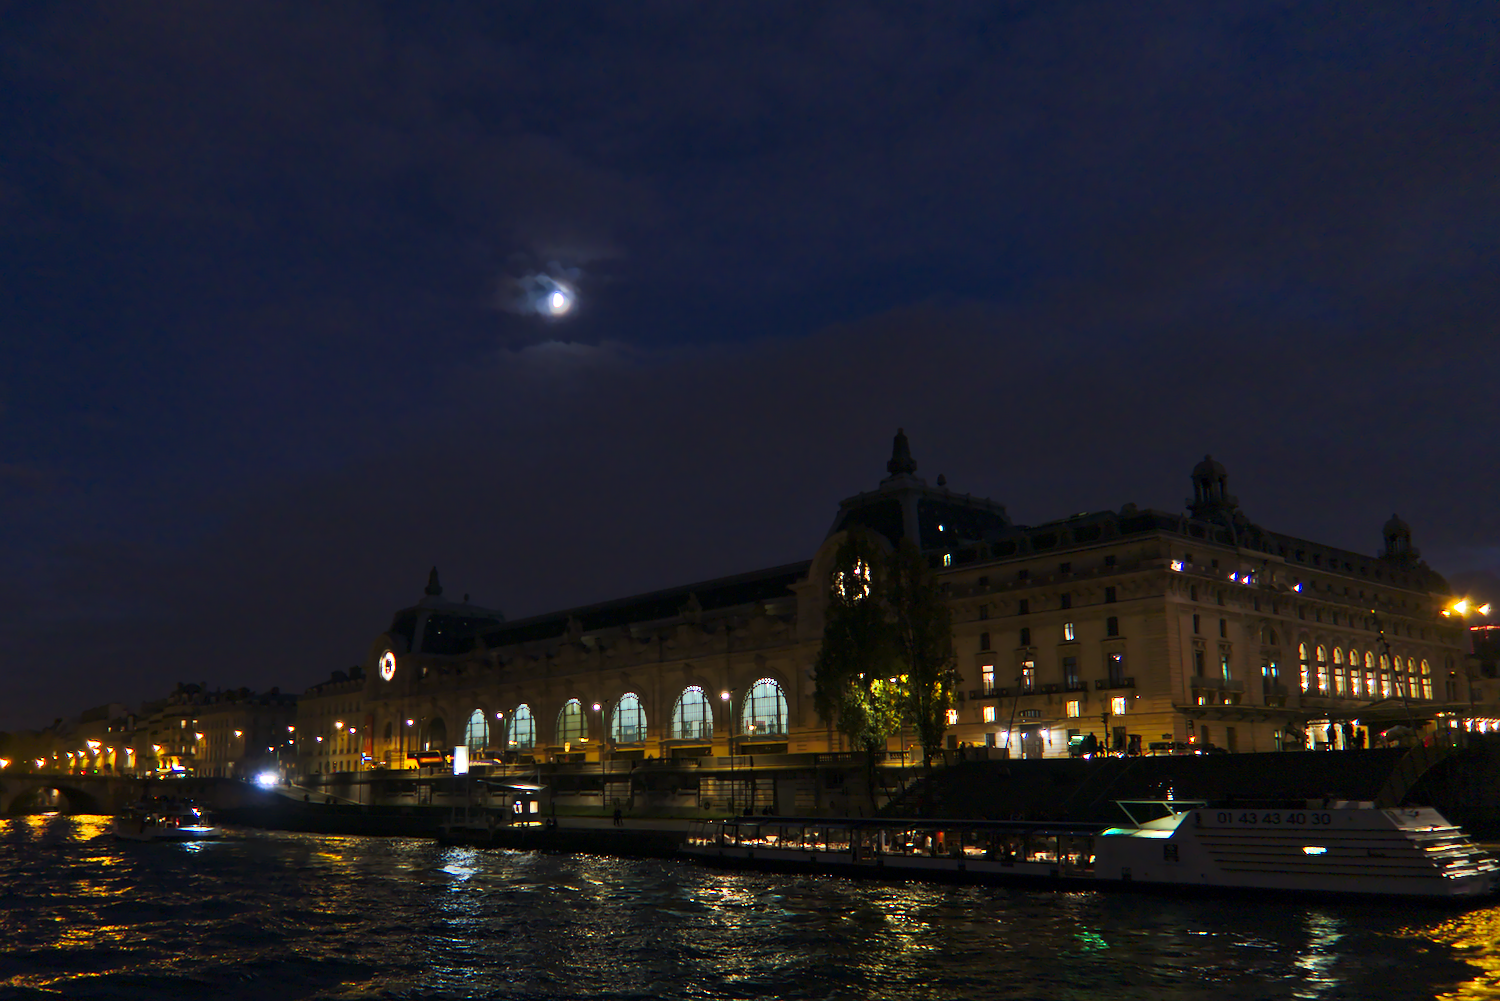 Musee d'Orsay from the river at night